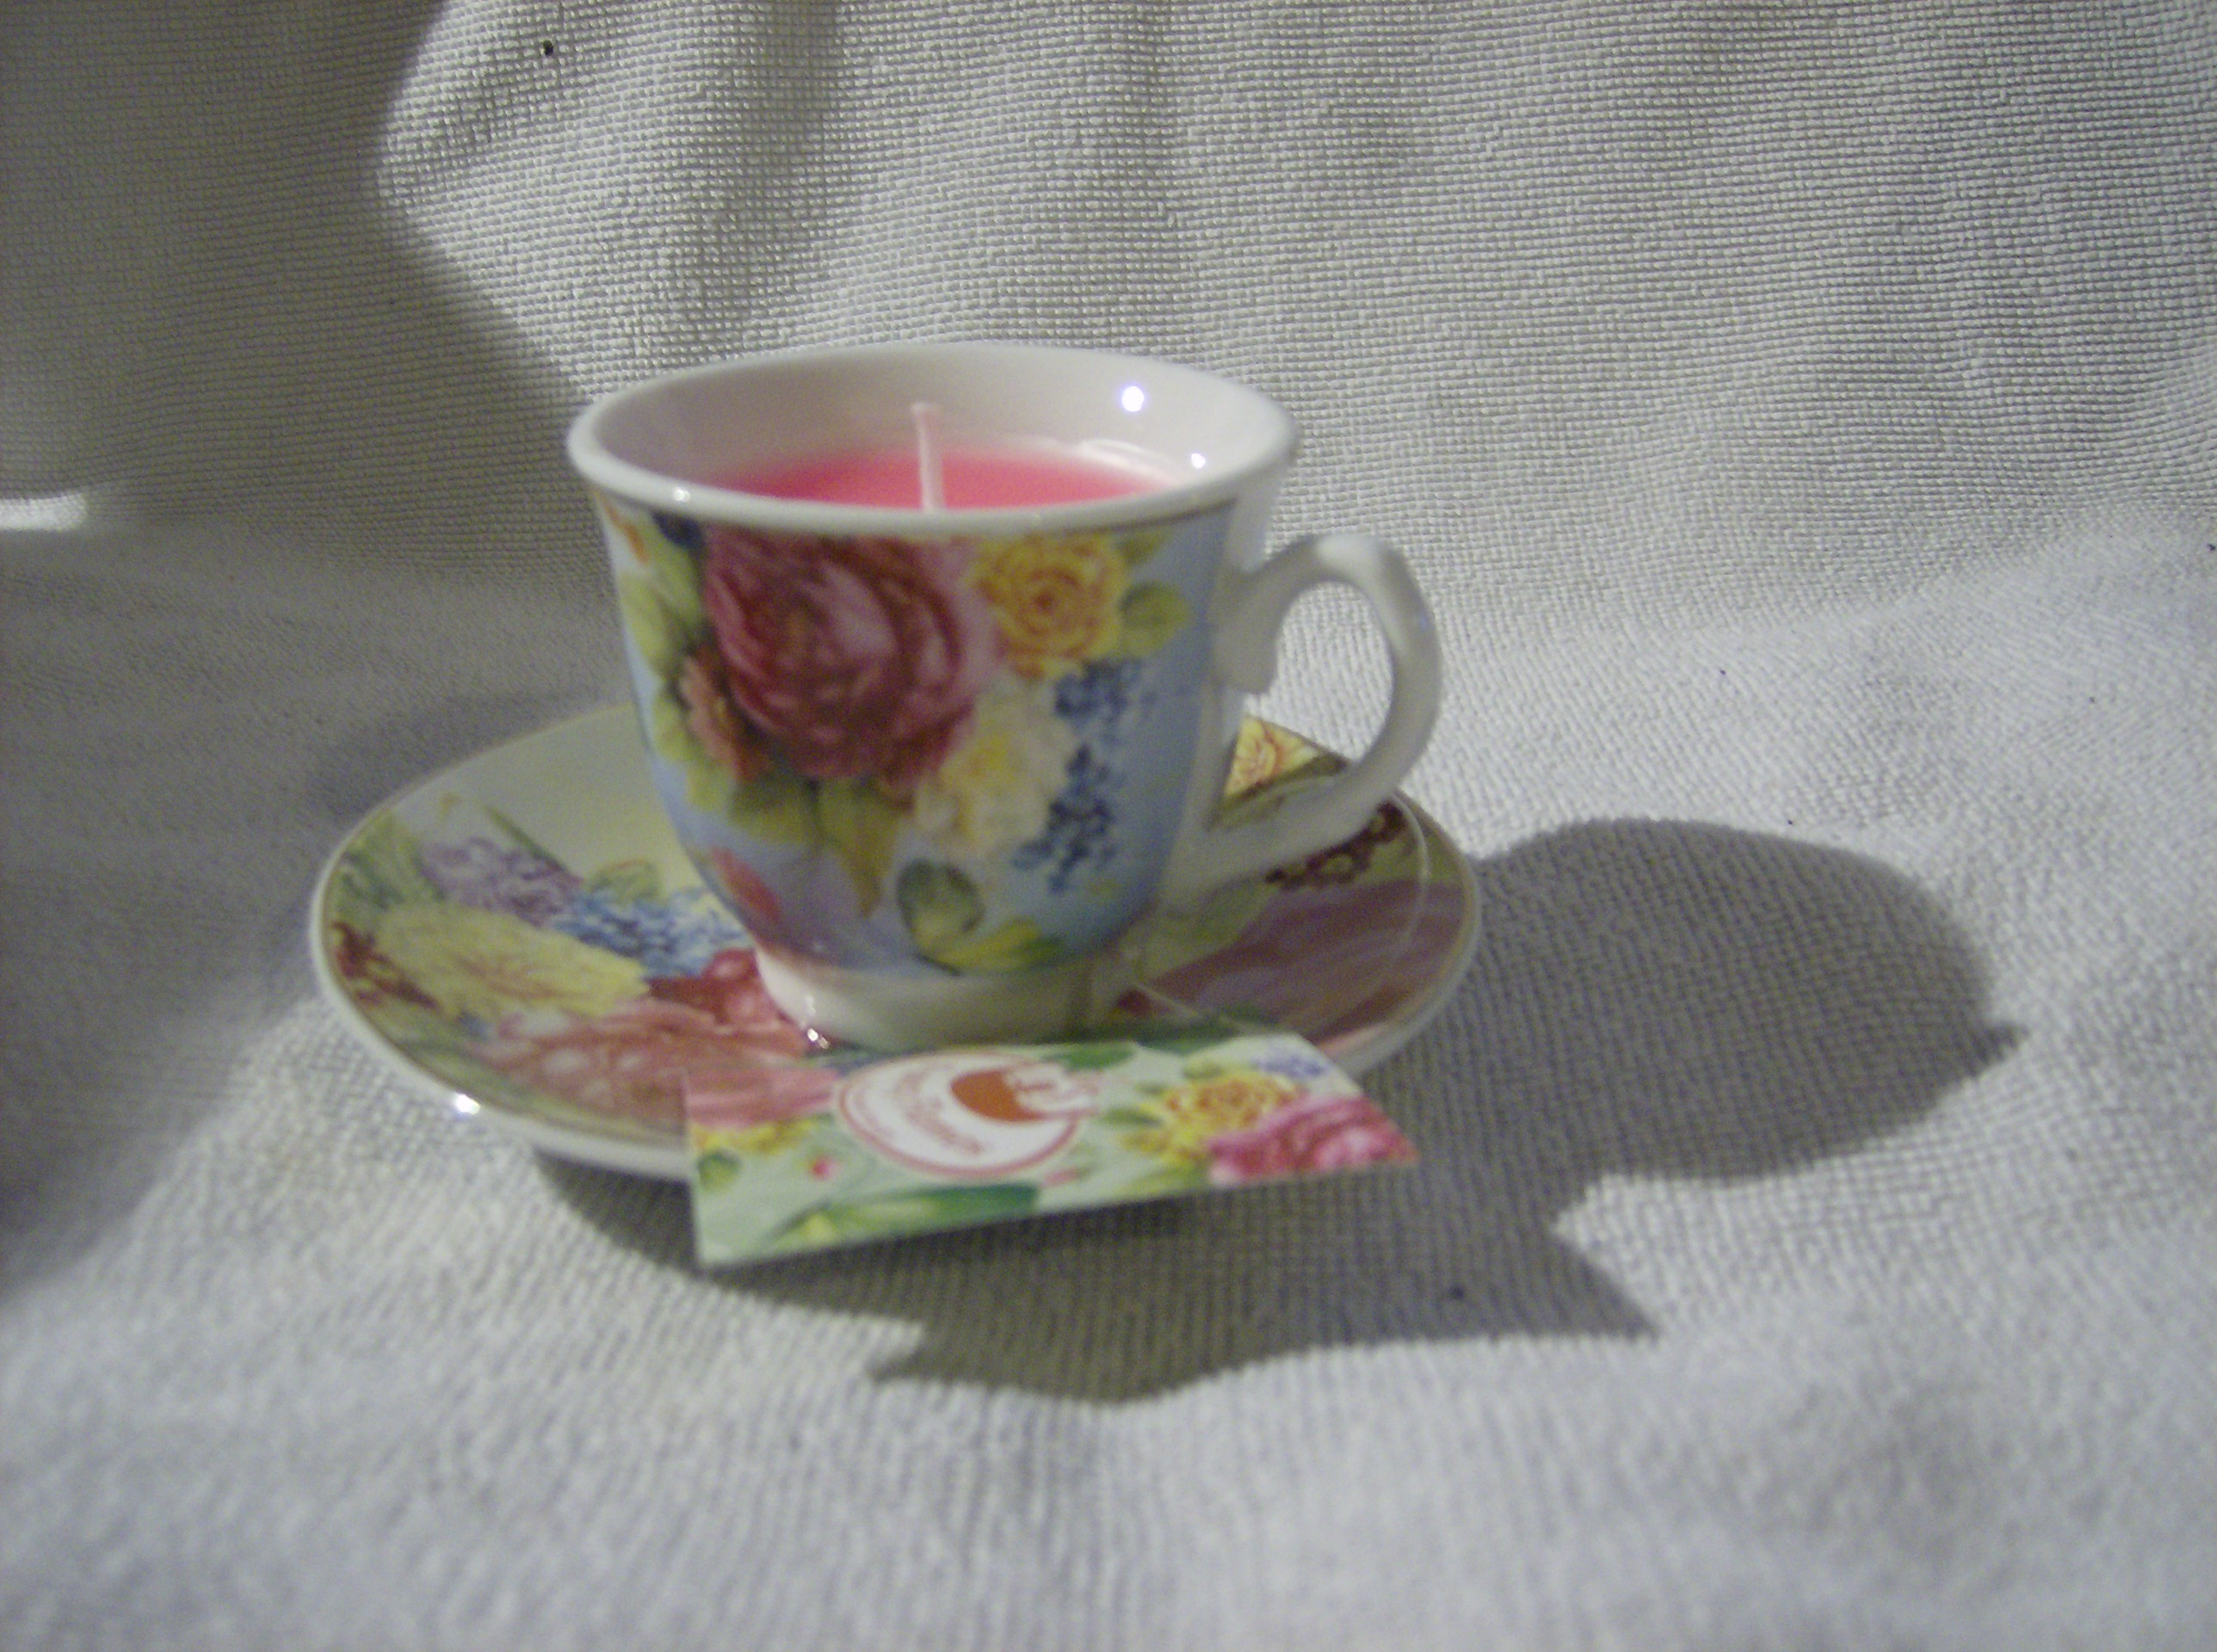 Fancy Cappuccino Cups Decorative Espresso Cup And Saucer With Candle Blue With Roses